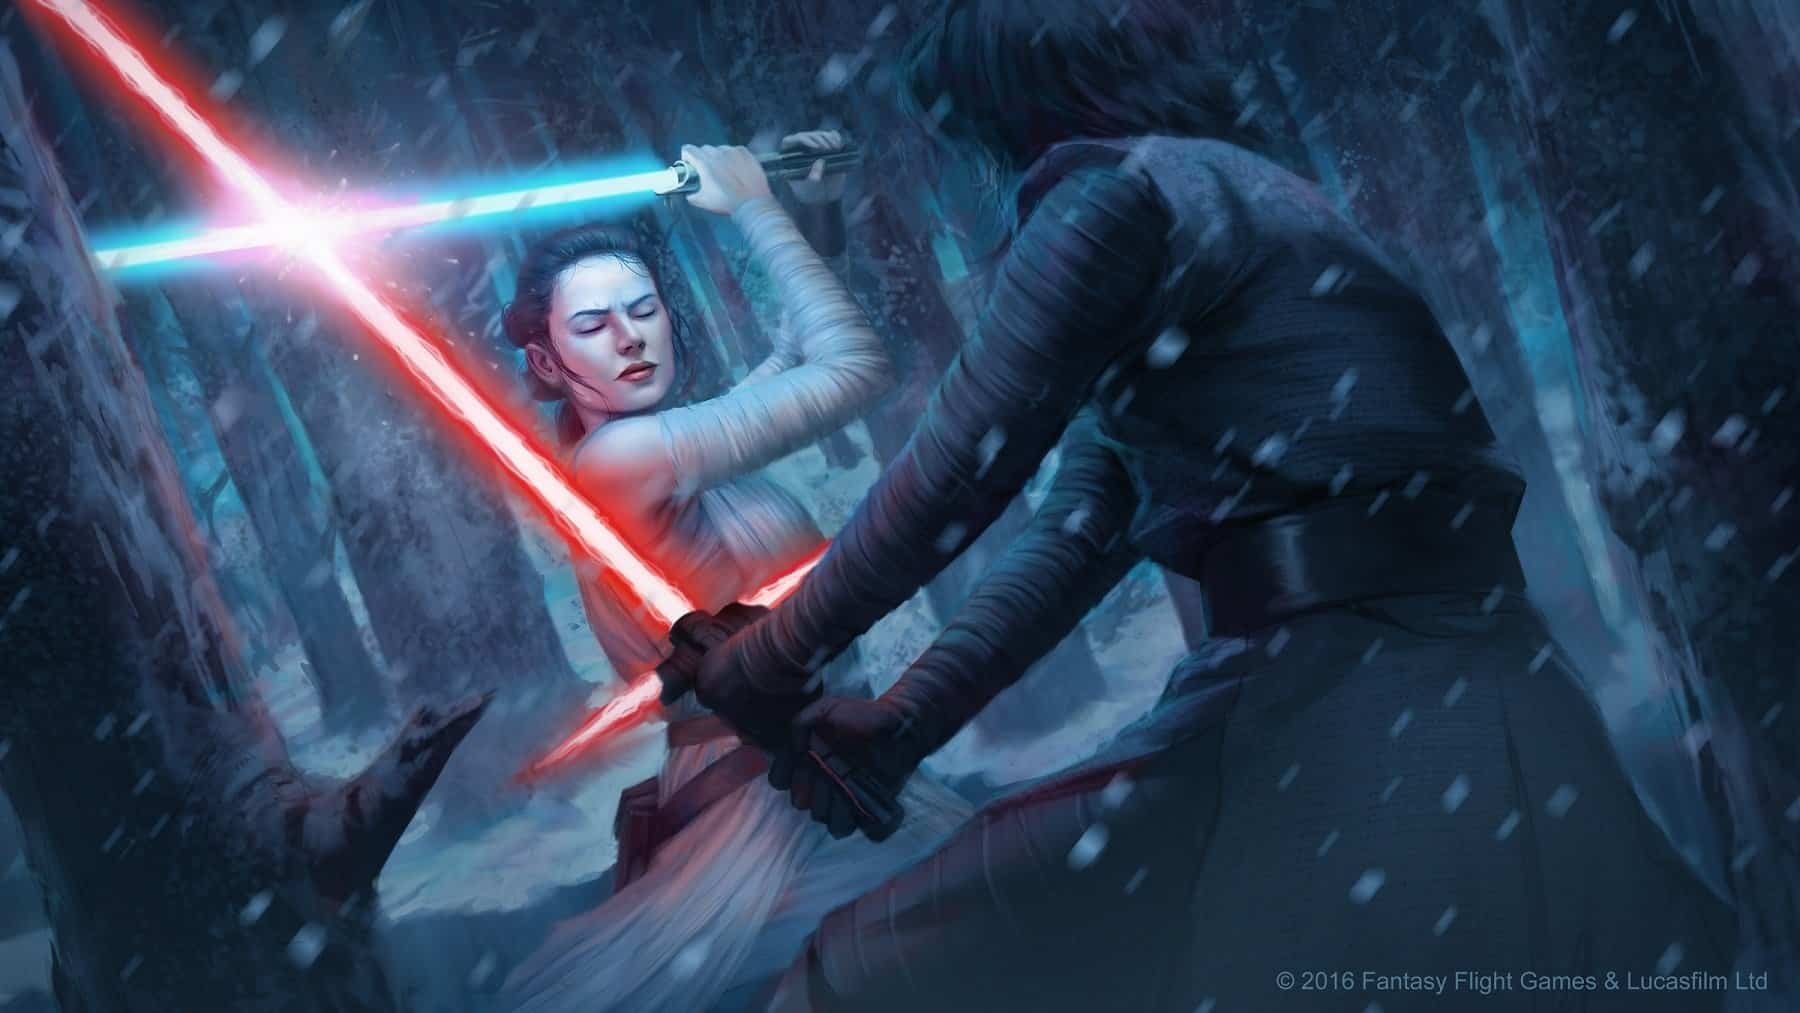 Star Wars Destiny Rey vs Kylo